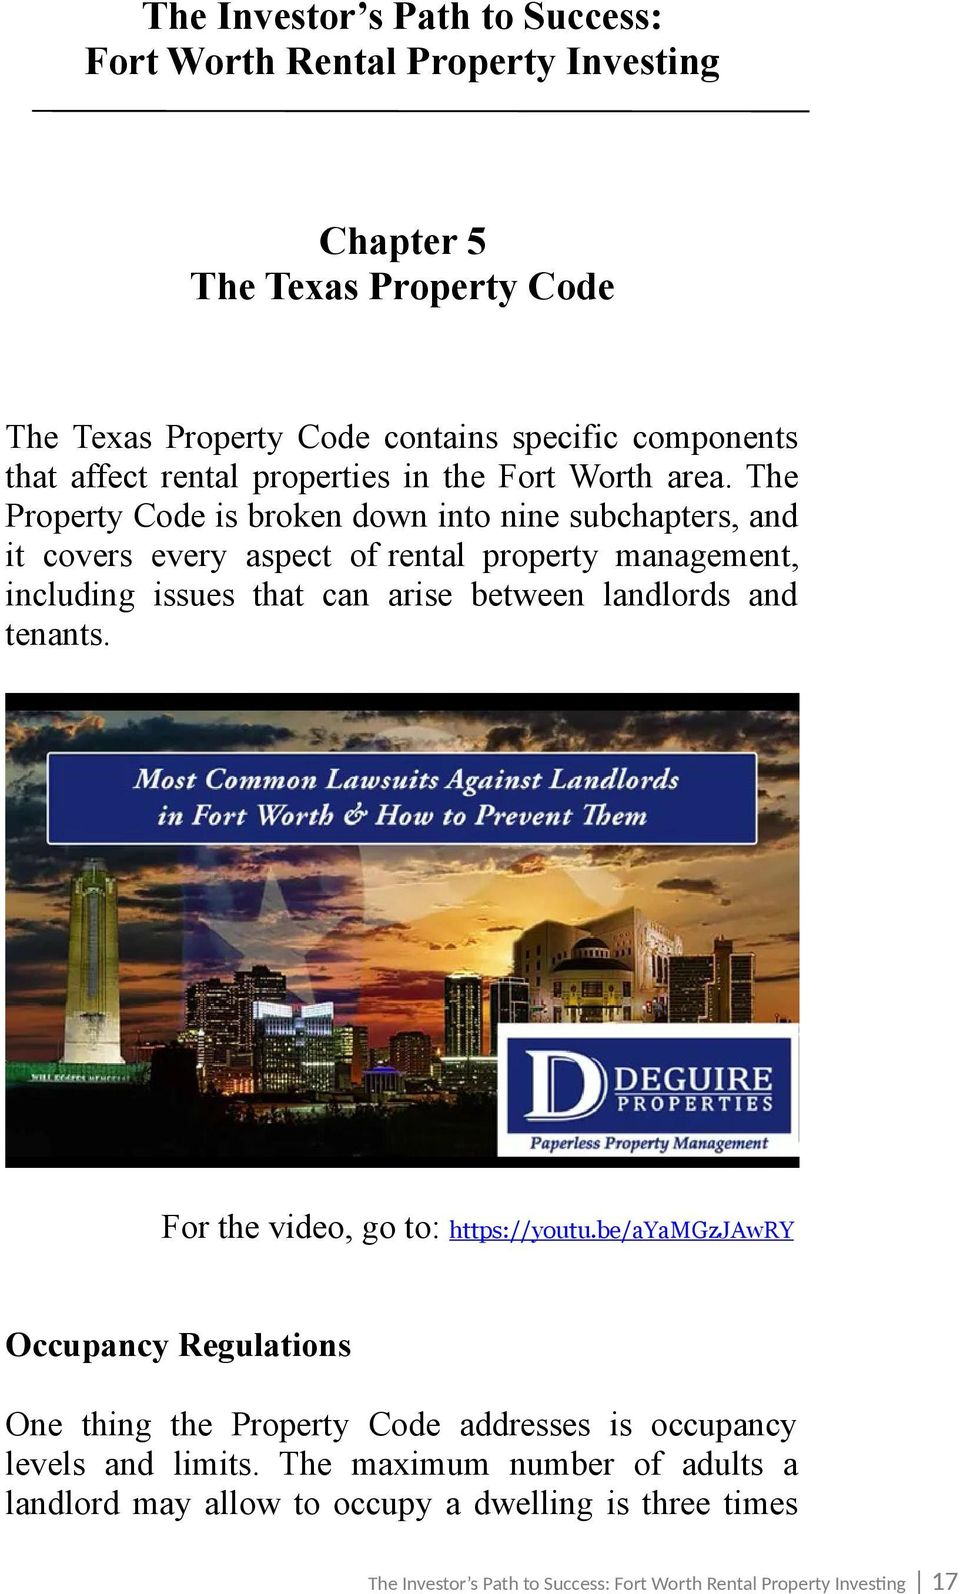 The Property Code is broken down into nine subchapters, and it covers every aspect of rental property management, including issues that can arise between